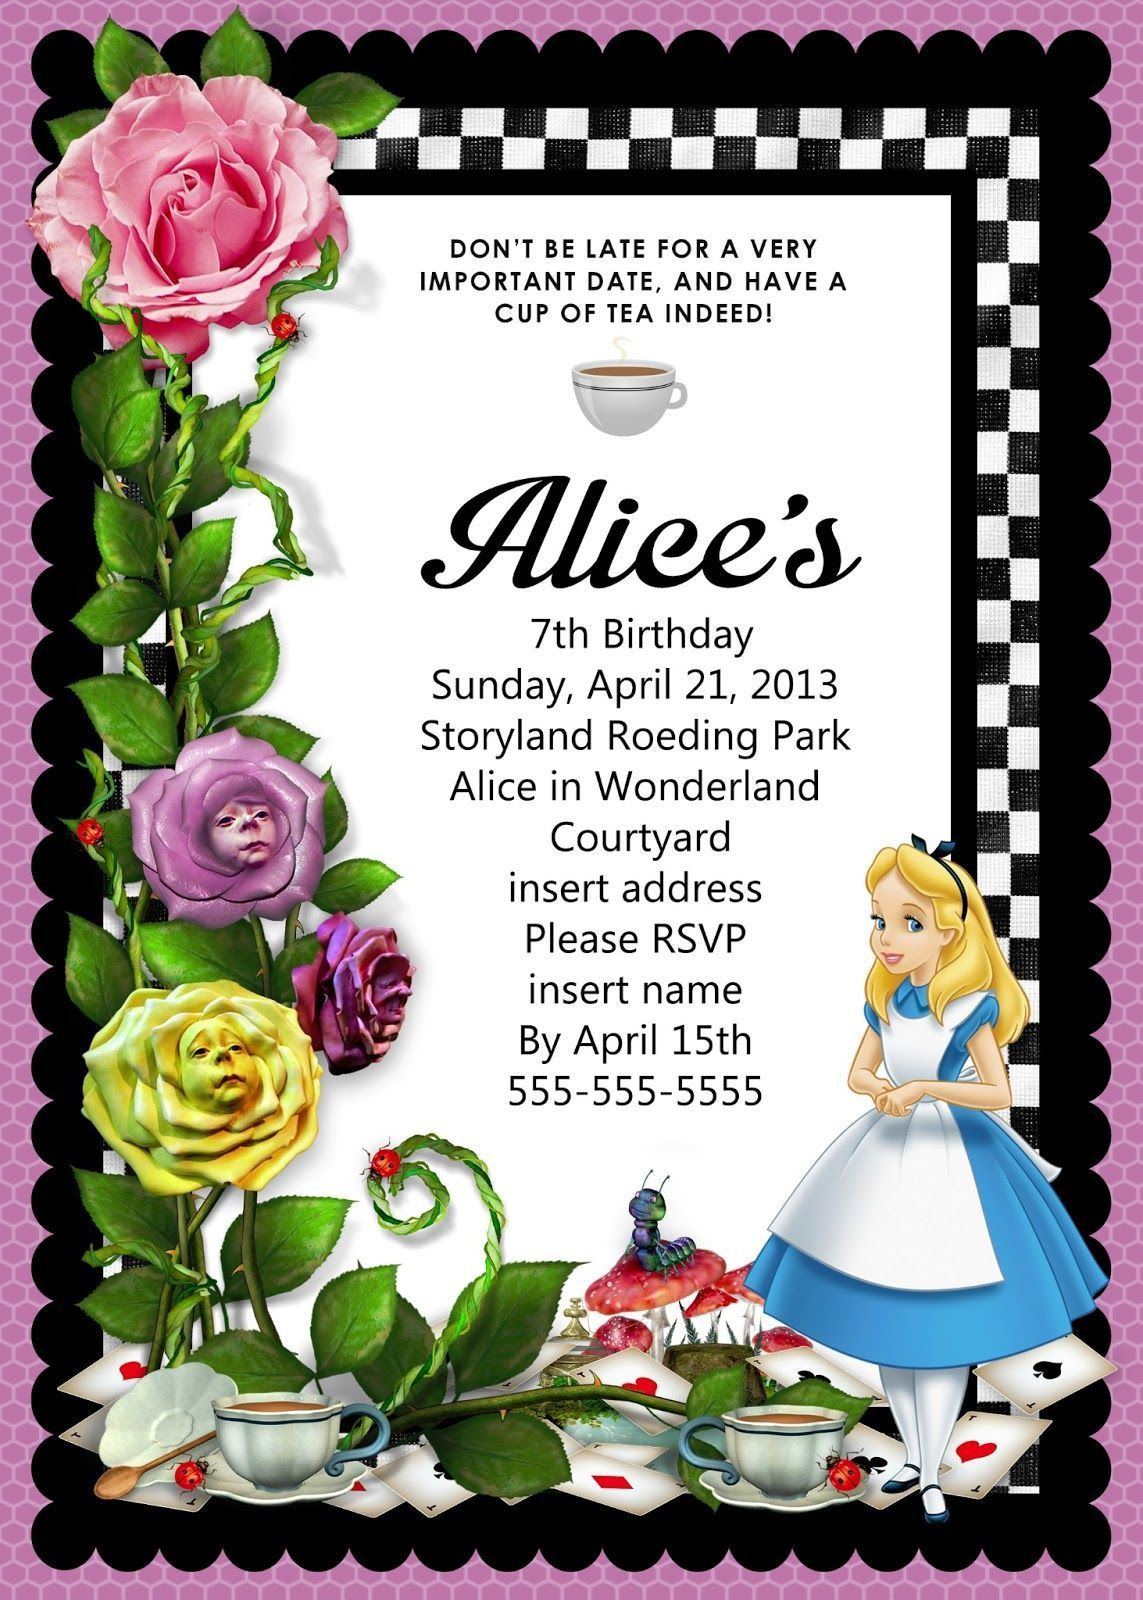 008 Awesome Alice In Wonderland Birthday Party Invitation Printable Free Highest Clarity Full